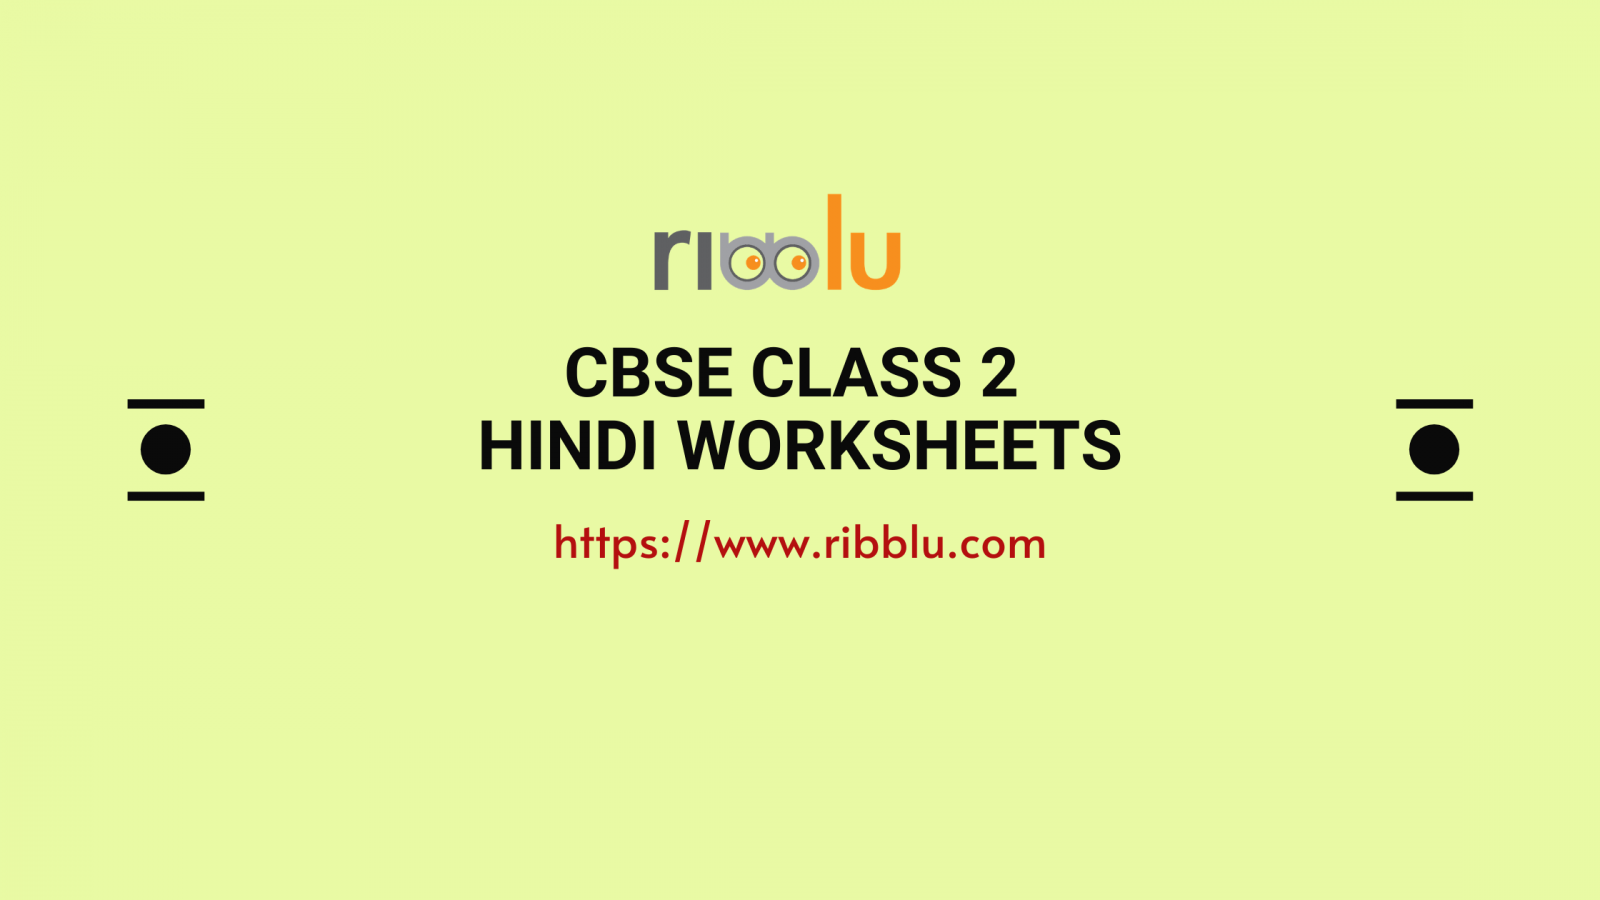 CBSE Class 2 Hindi Worksheets